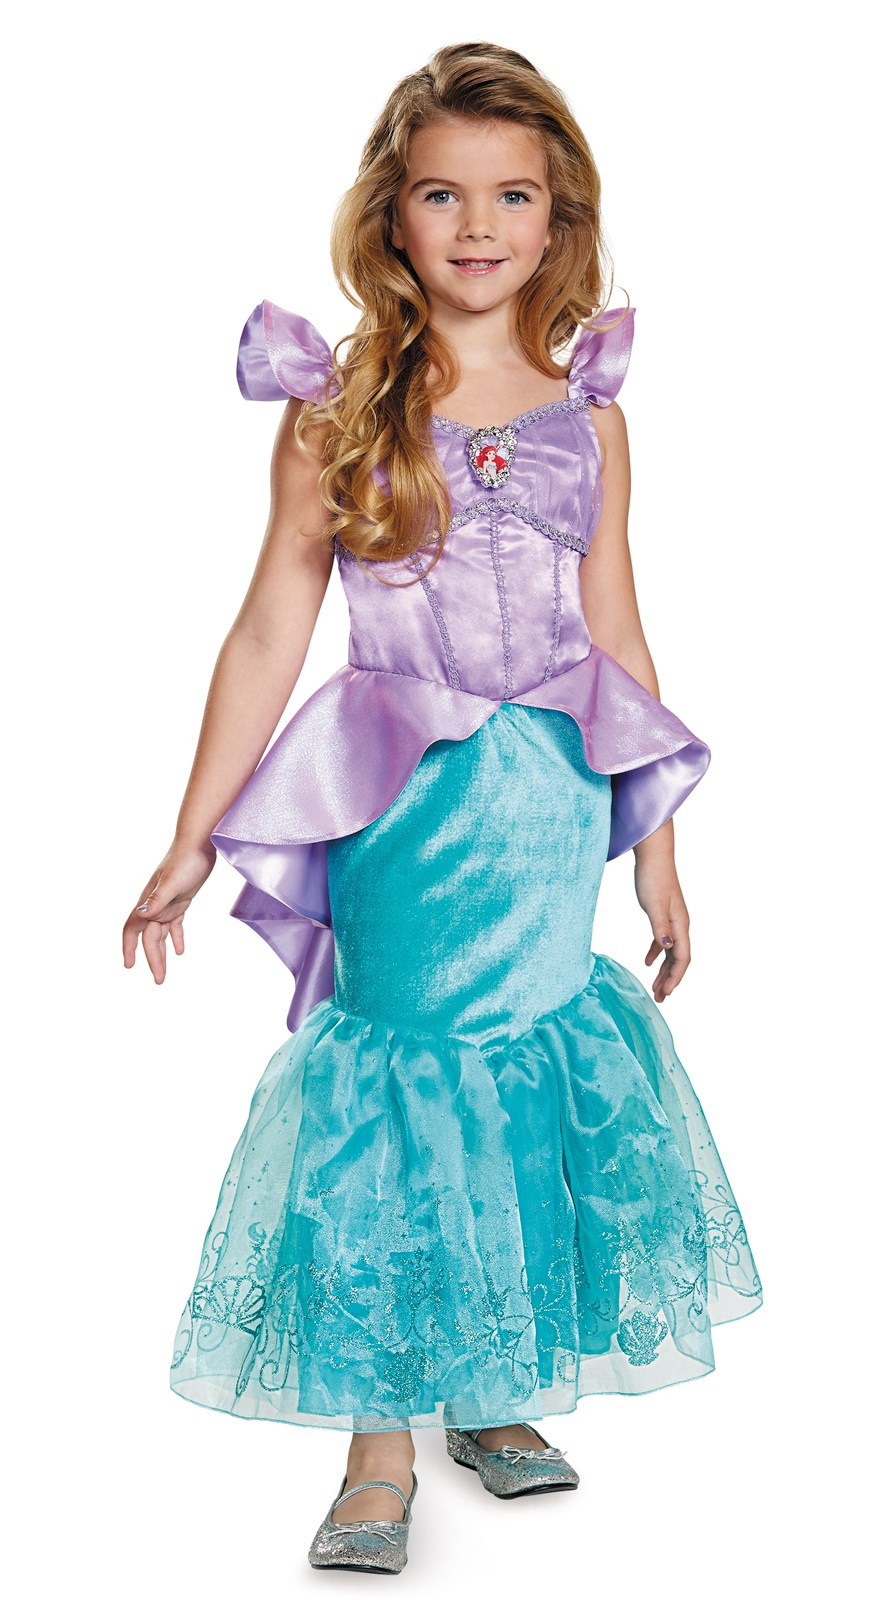 The Little Mermaid Storybook Ariel Prestige Toddler / Child Costume 3T-4T